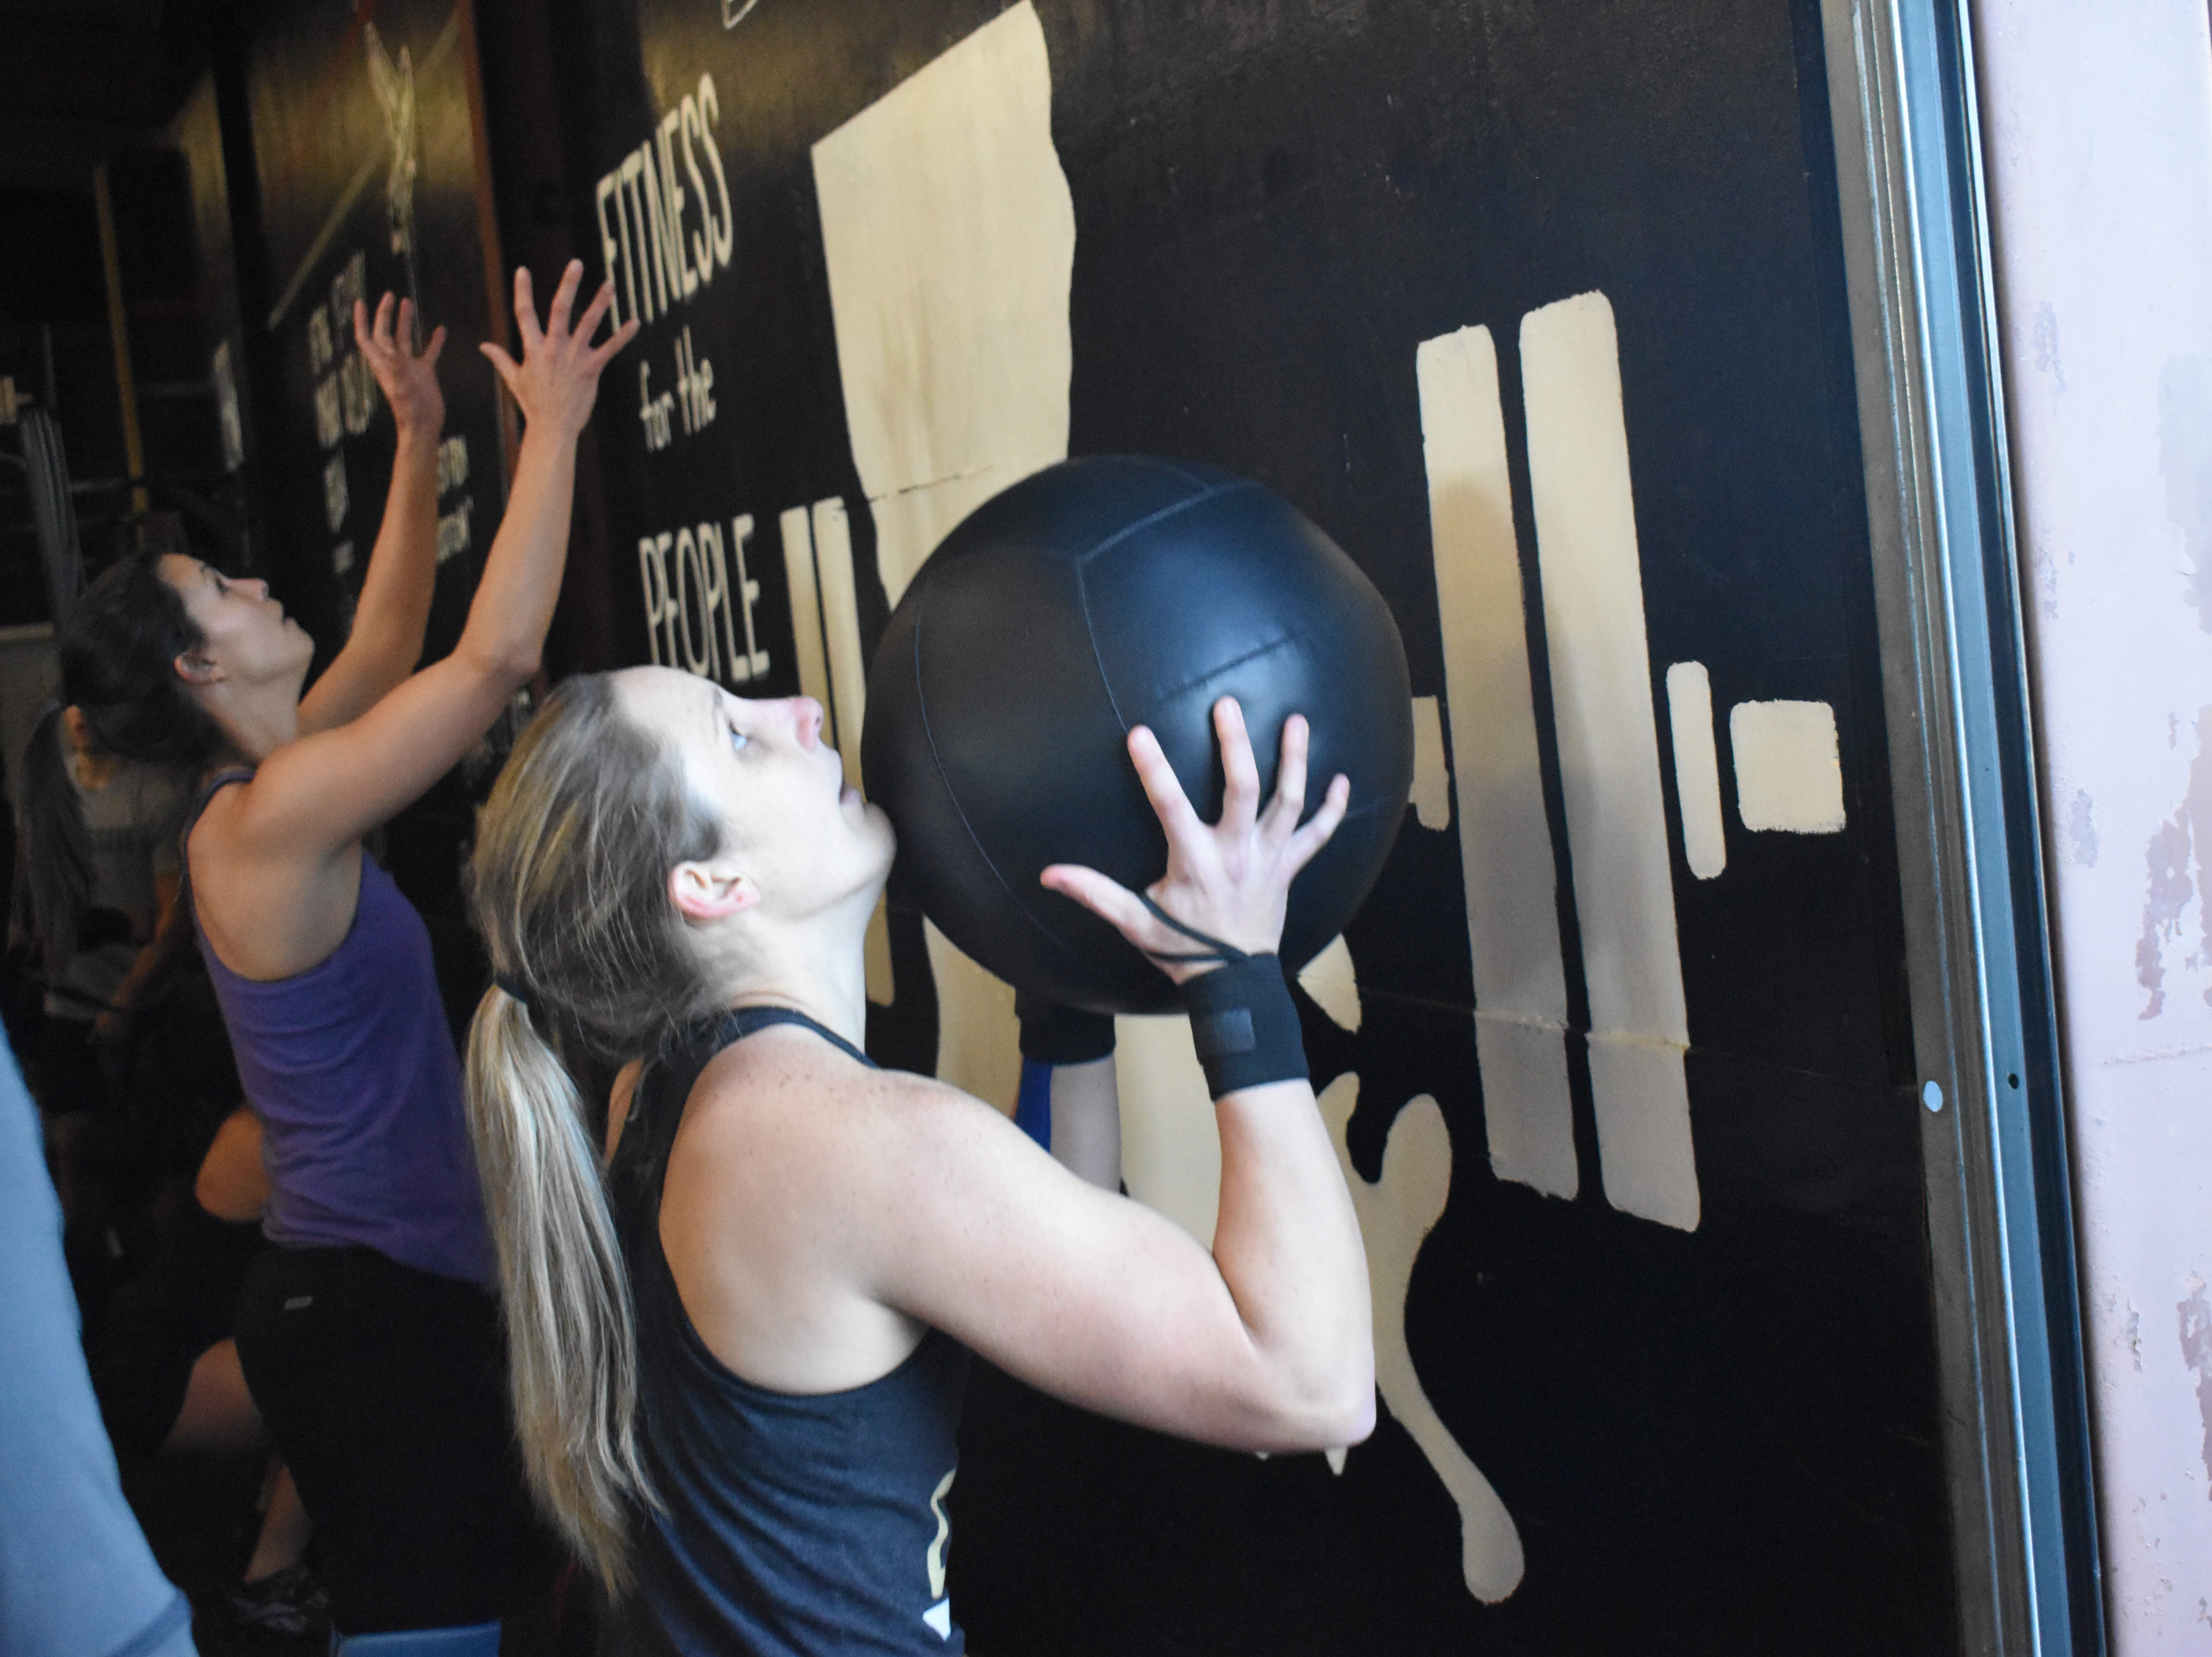 Rachel Daniels of CrossFit 28 in Pineville performs a set of wall balls in the Iron Boot Classic. Twenty teams from six CrossFit affiliates in the area competed in the Iron Boot Classic  Saturday, Jan. 26, 2019 at the Iron Boot, formerly CrossFit Alexandria. Each team consisted of two men and two women who competed in five heats throuighout the day. Some of the exercises they performed were classic workouts such as deadlifts, burppees, wall balls and thrusters. William Albritton, owner of Iron Boot, said the competition involved the classic movements so everyone who works out could participate.